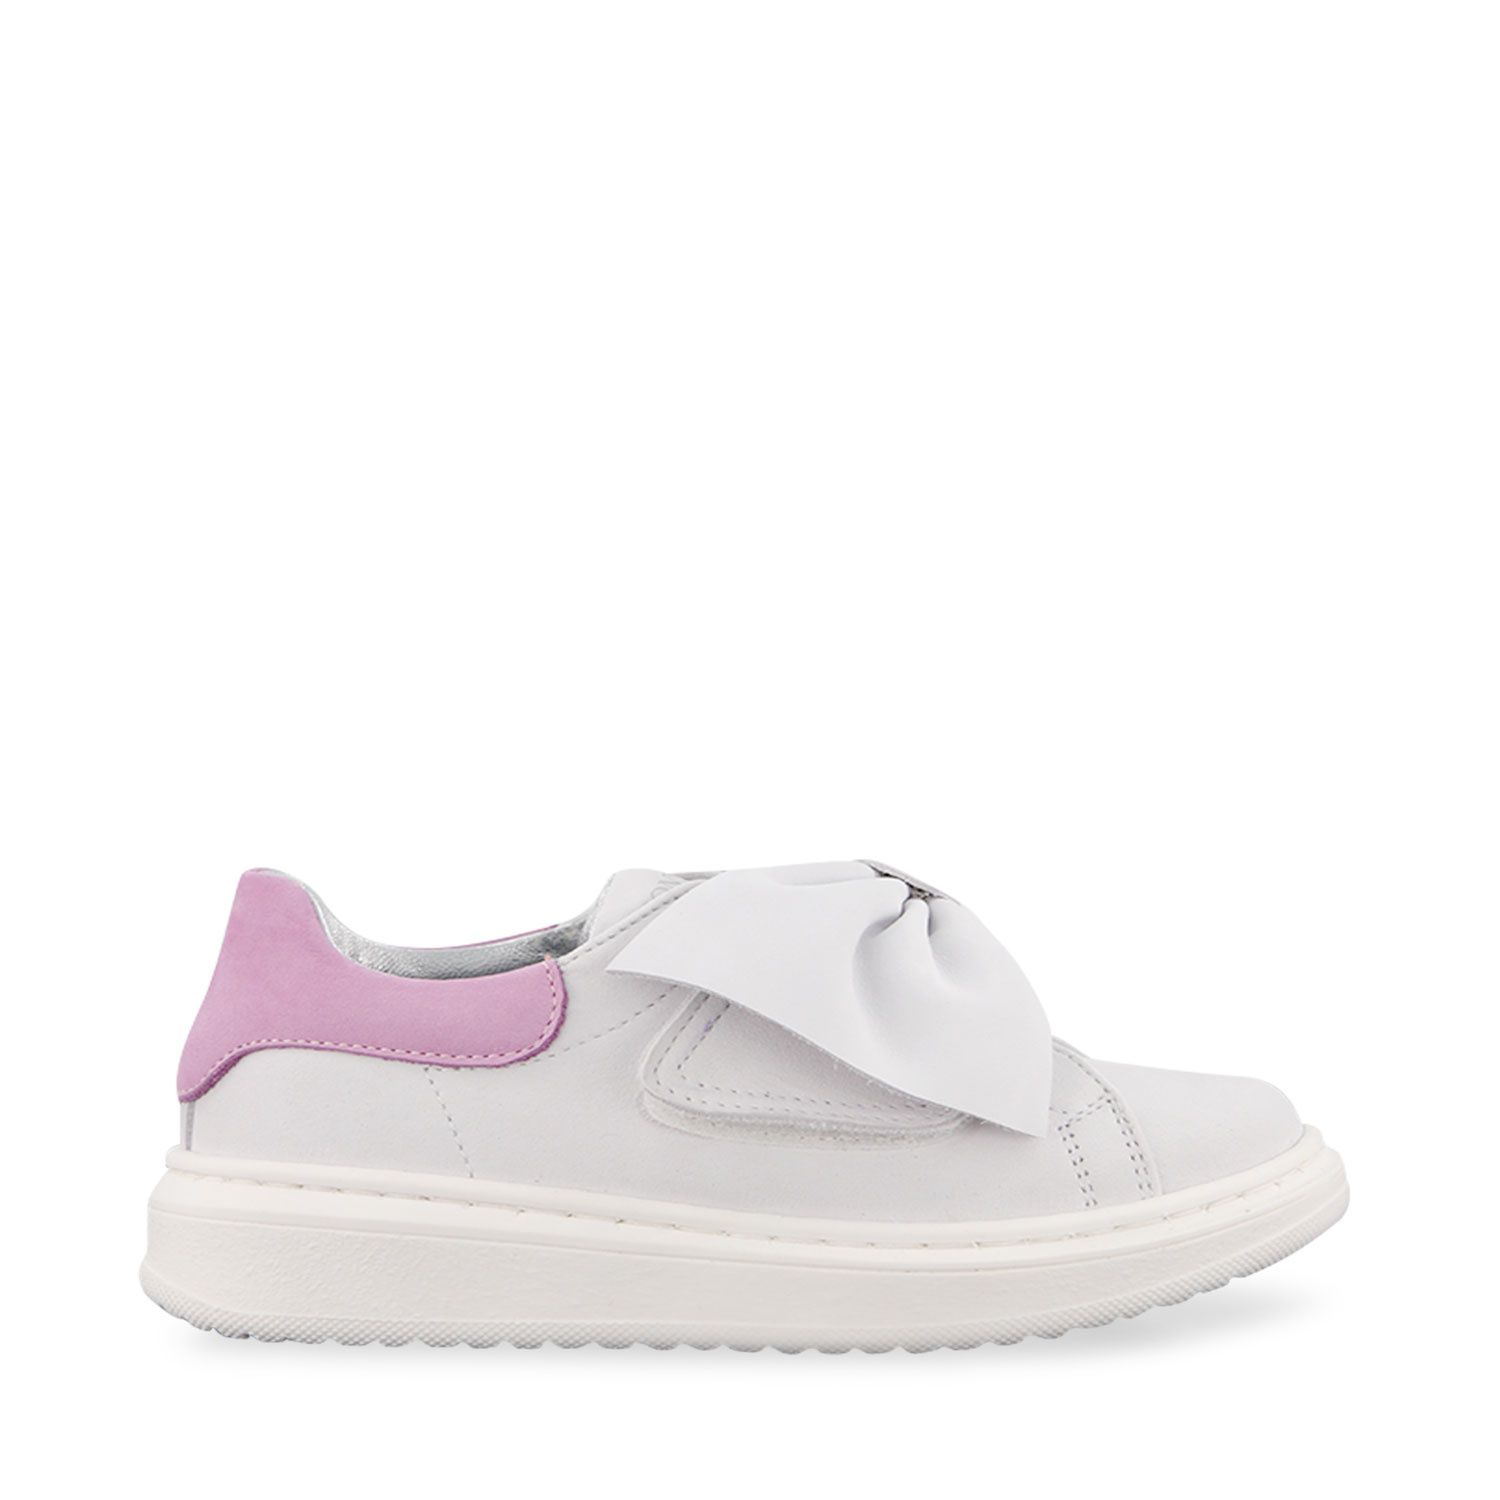 Picture of MonnaLisa 837018 kids sneakers white